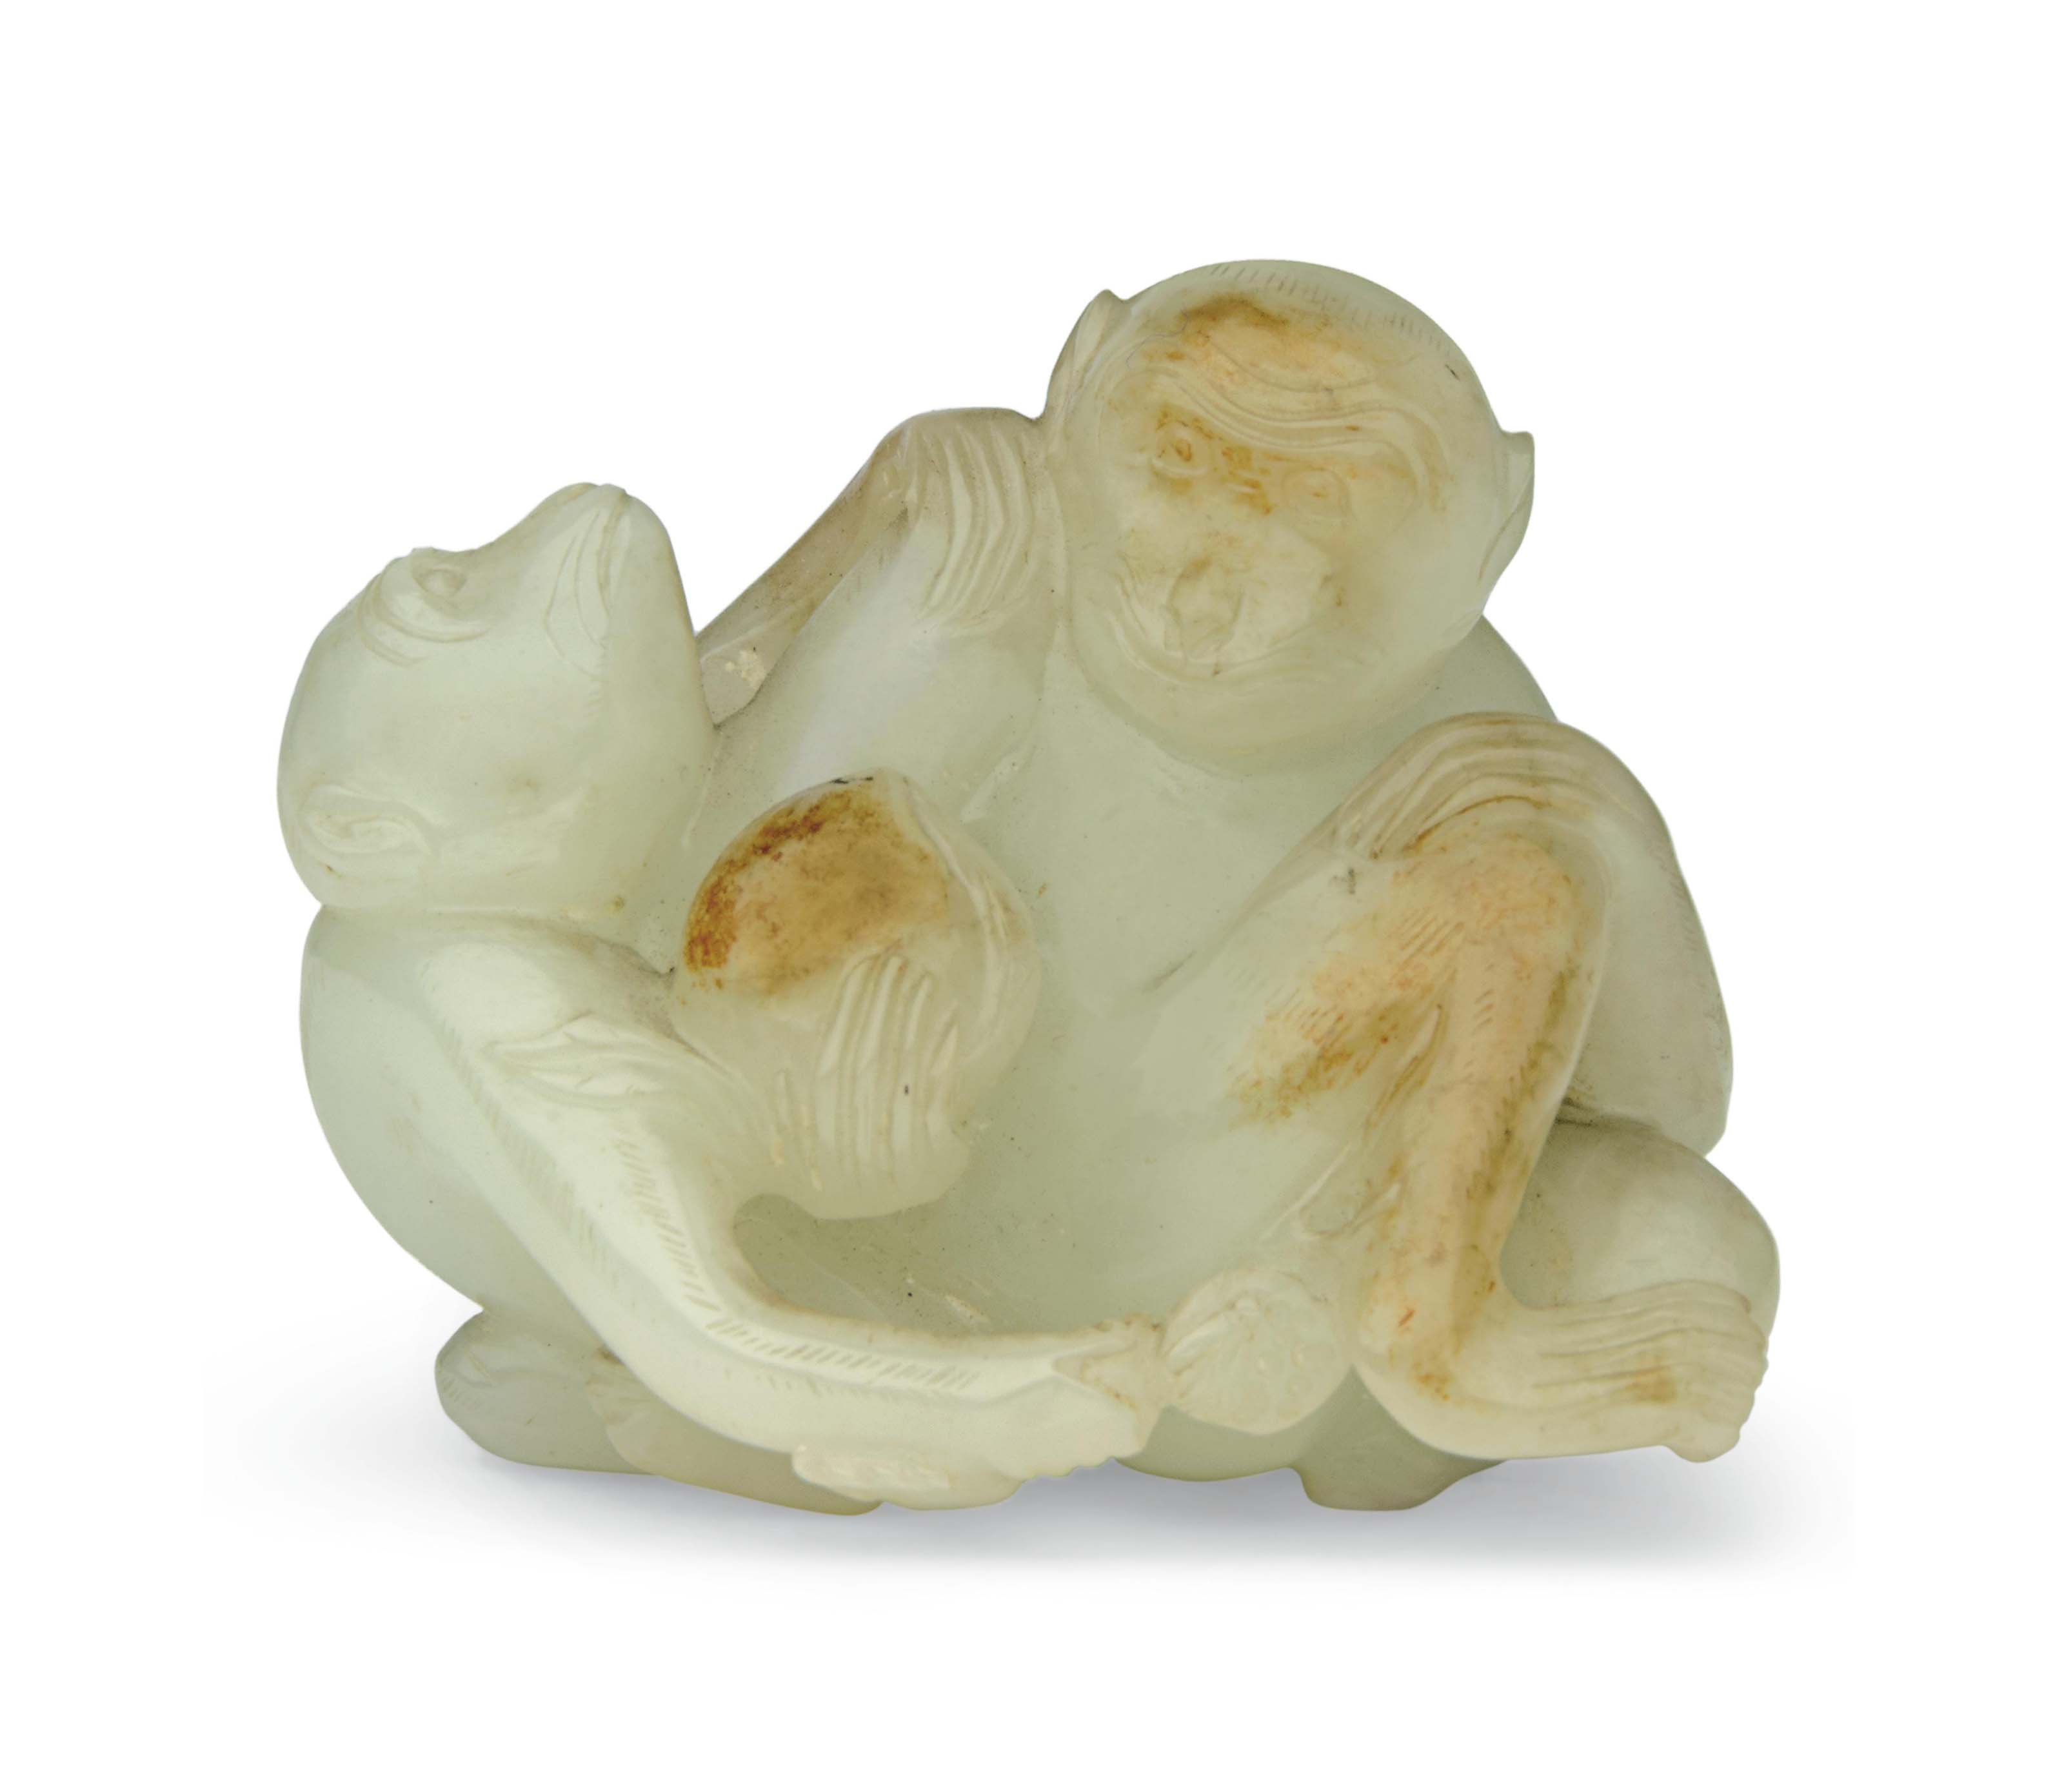 A PALE CELADON AND RUSSET JADE